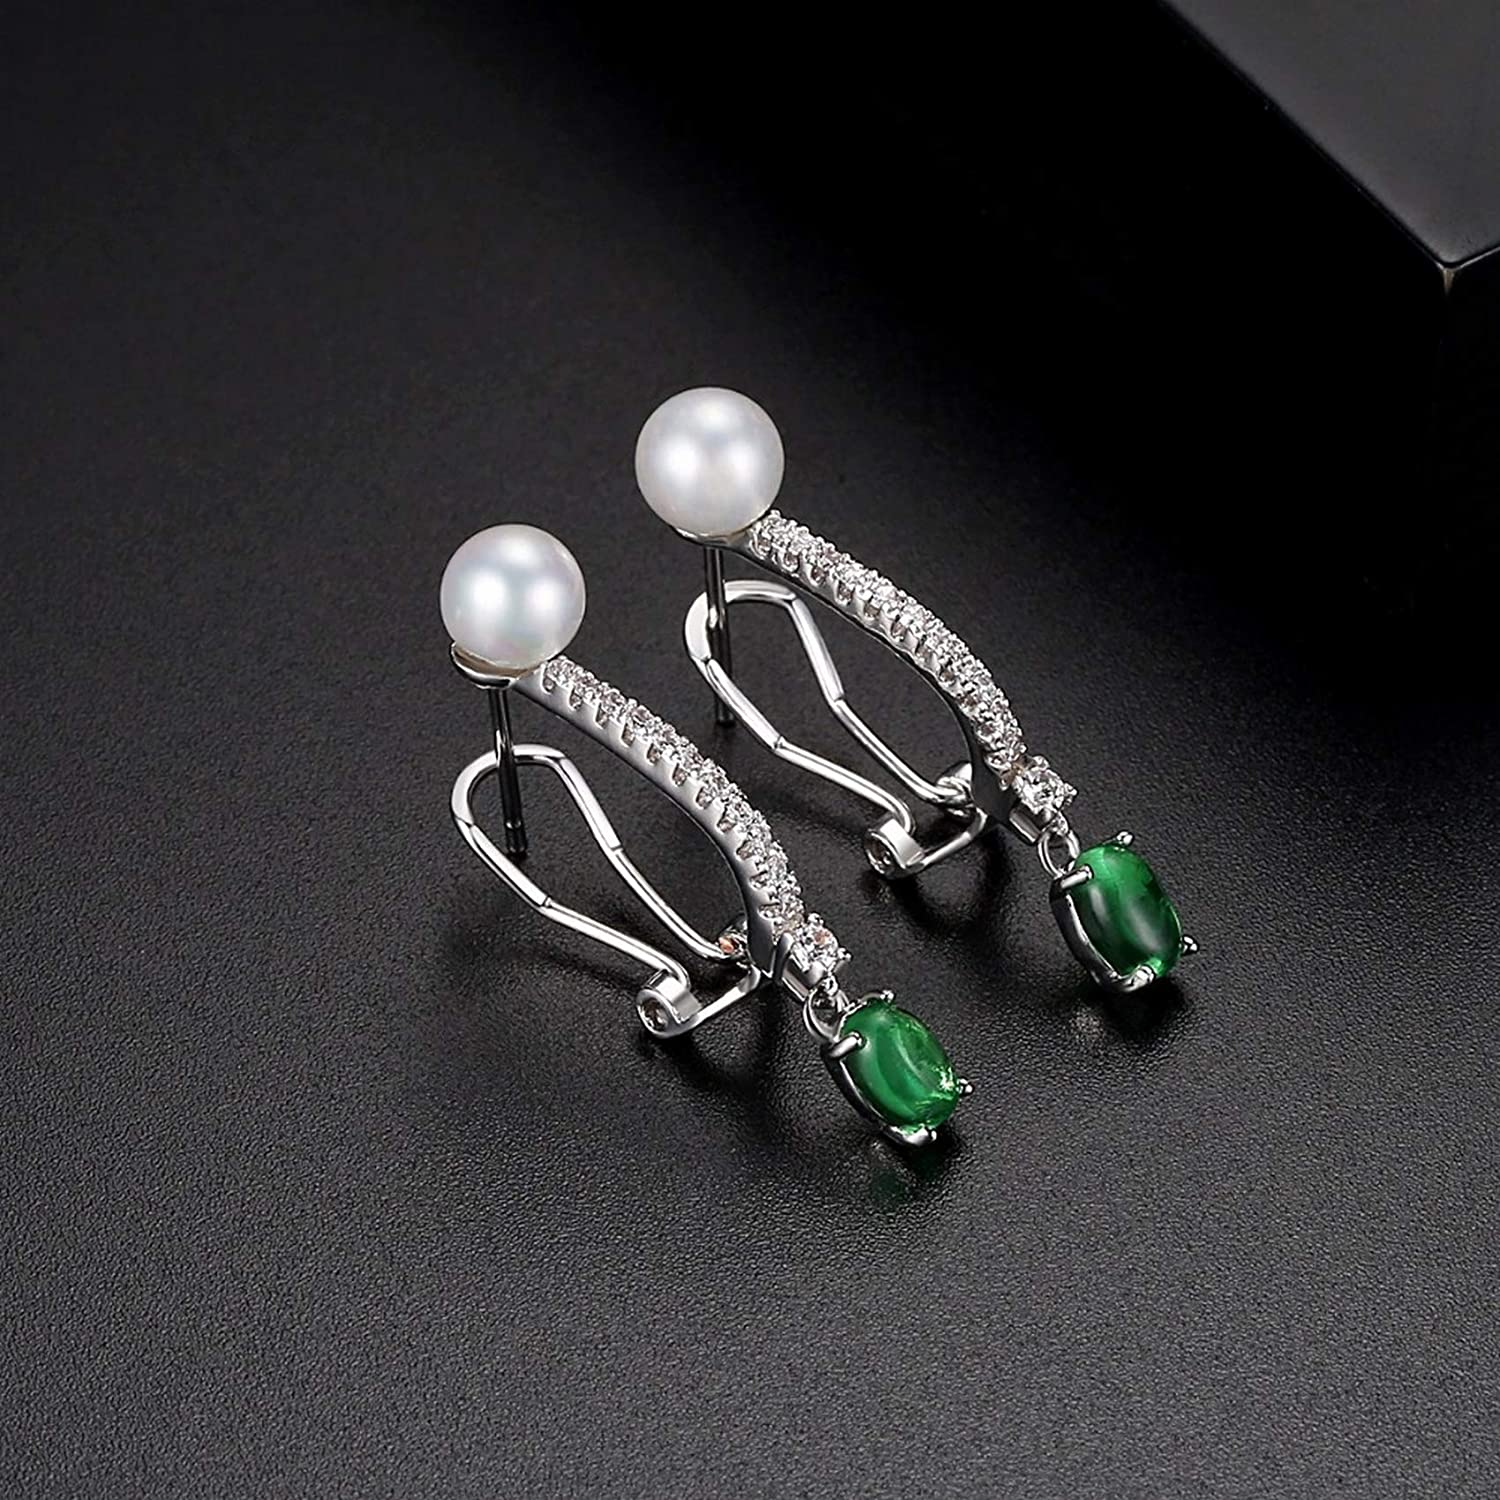 CS-DB Silver Inlaid Green Clear Cubic Ziron Imitation White Round Pearl Stud Charm Earrings